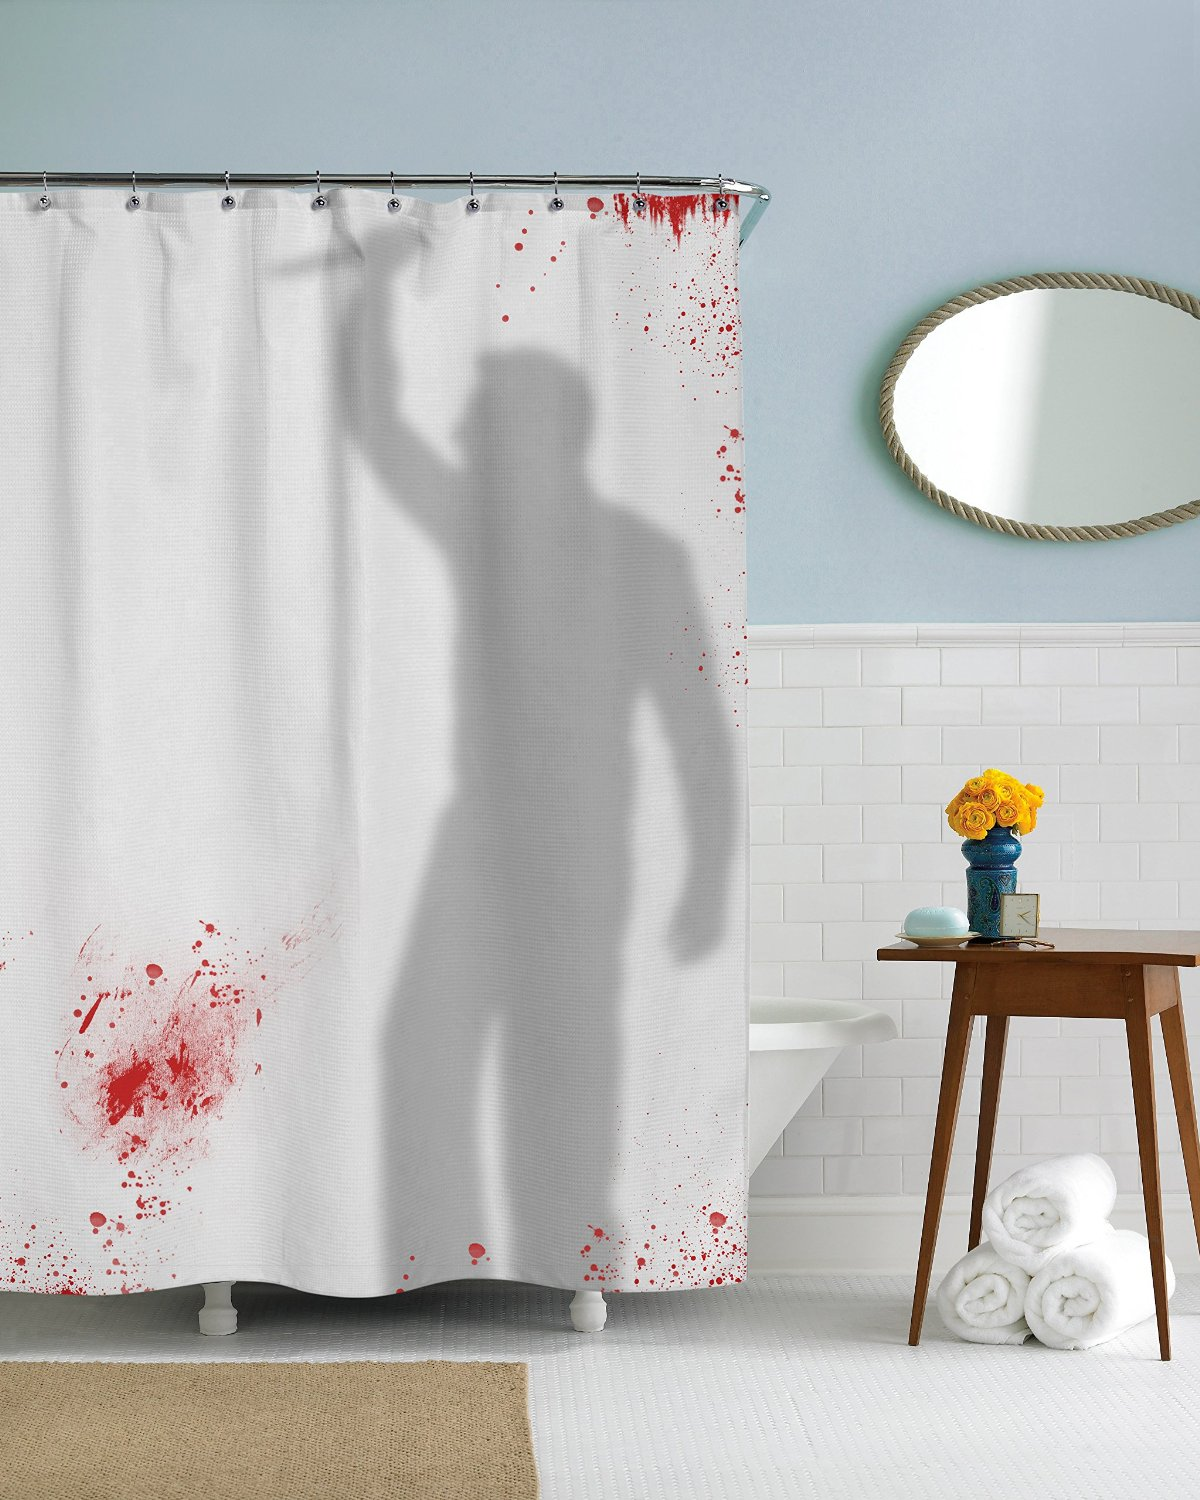 Psycho Killer Shower Curtain Horror Funny